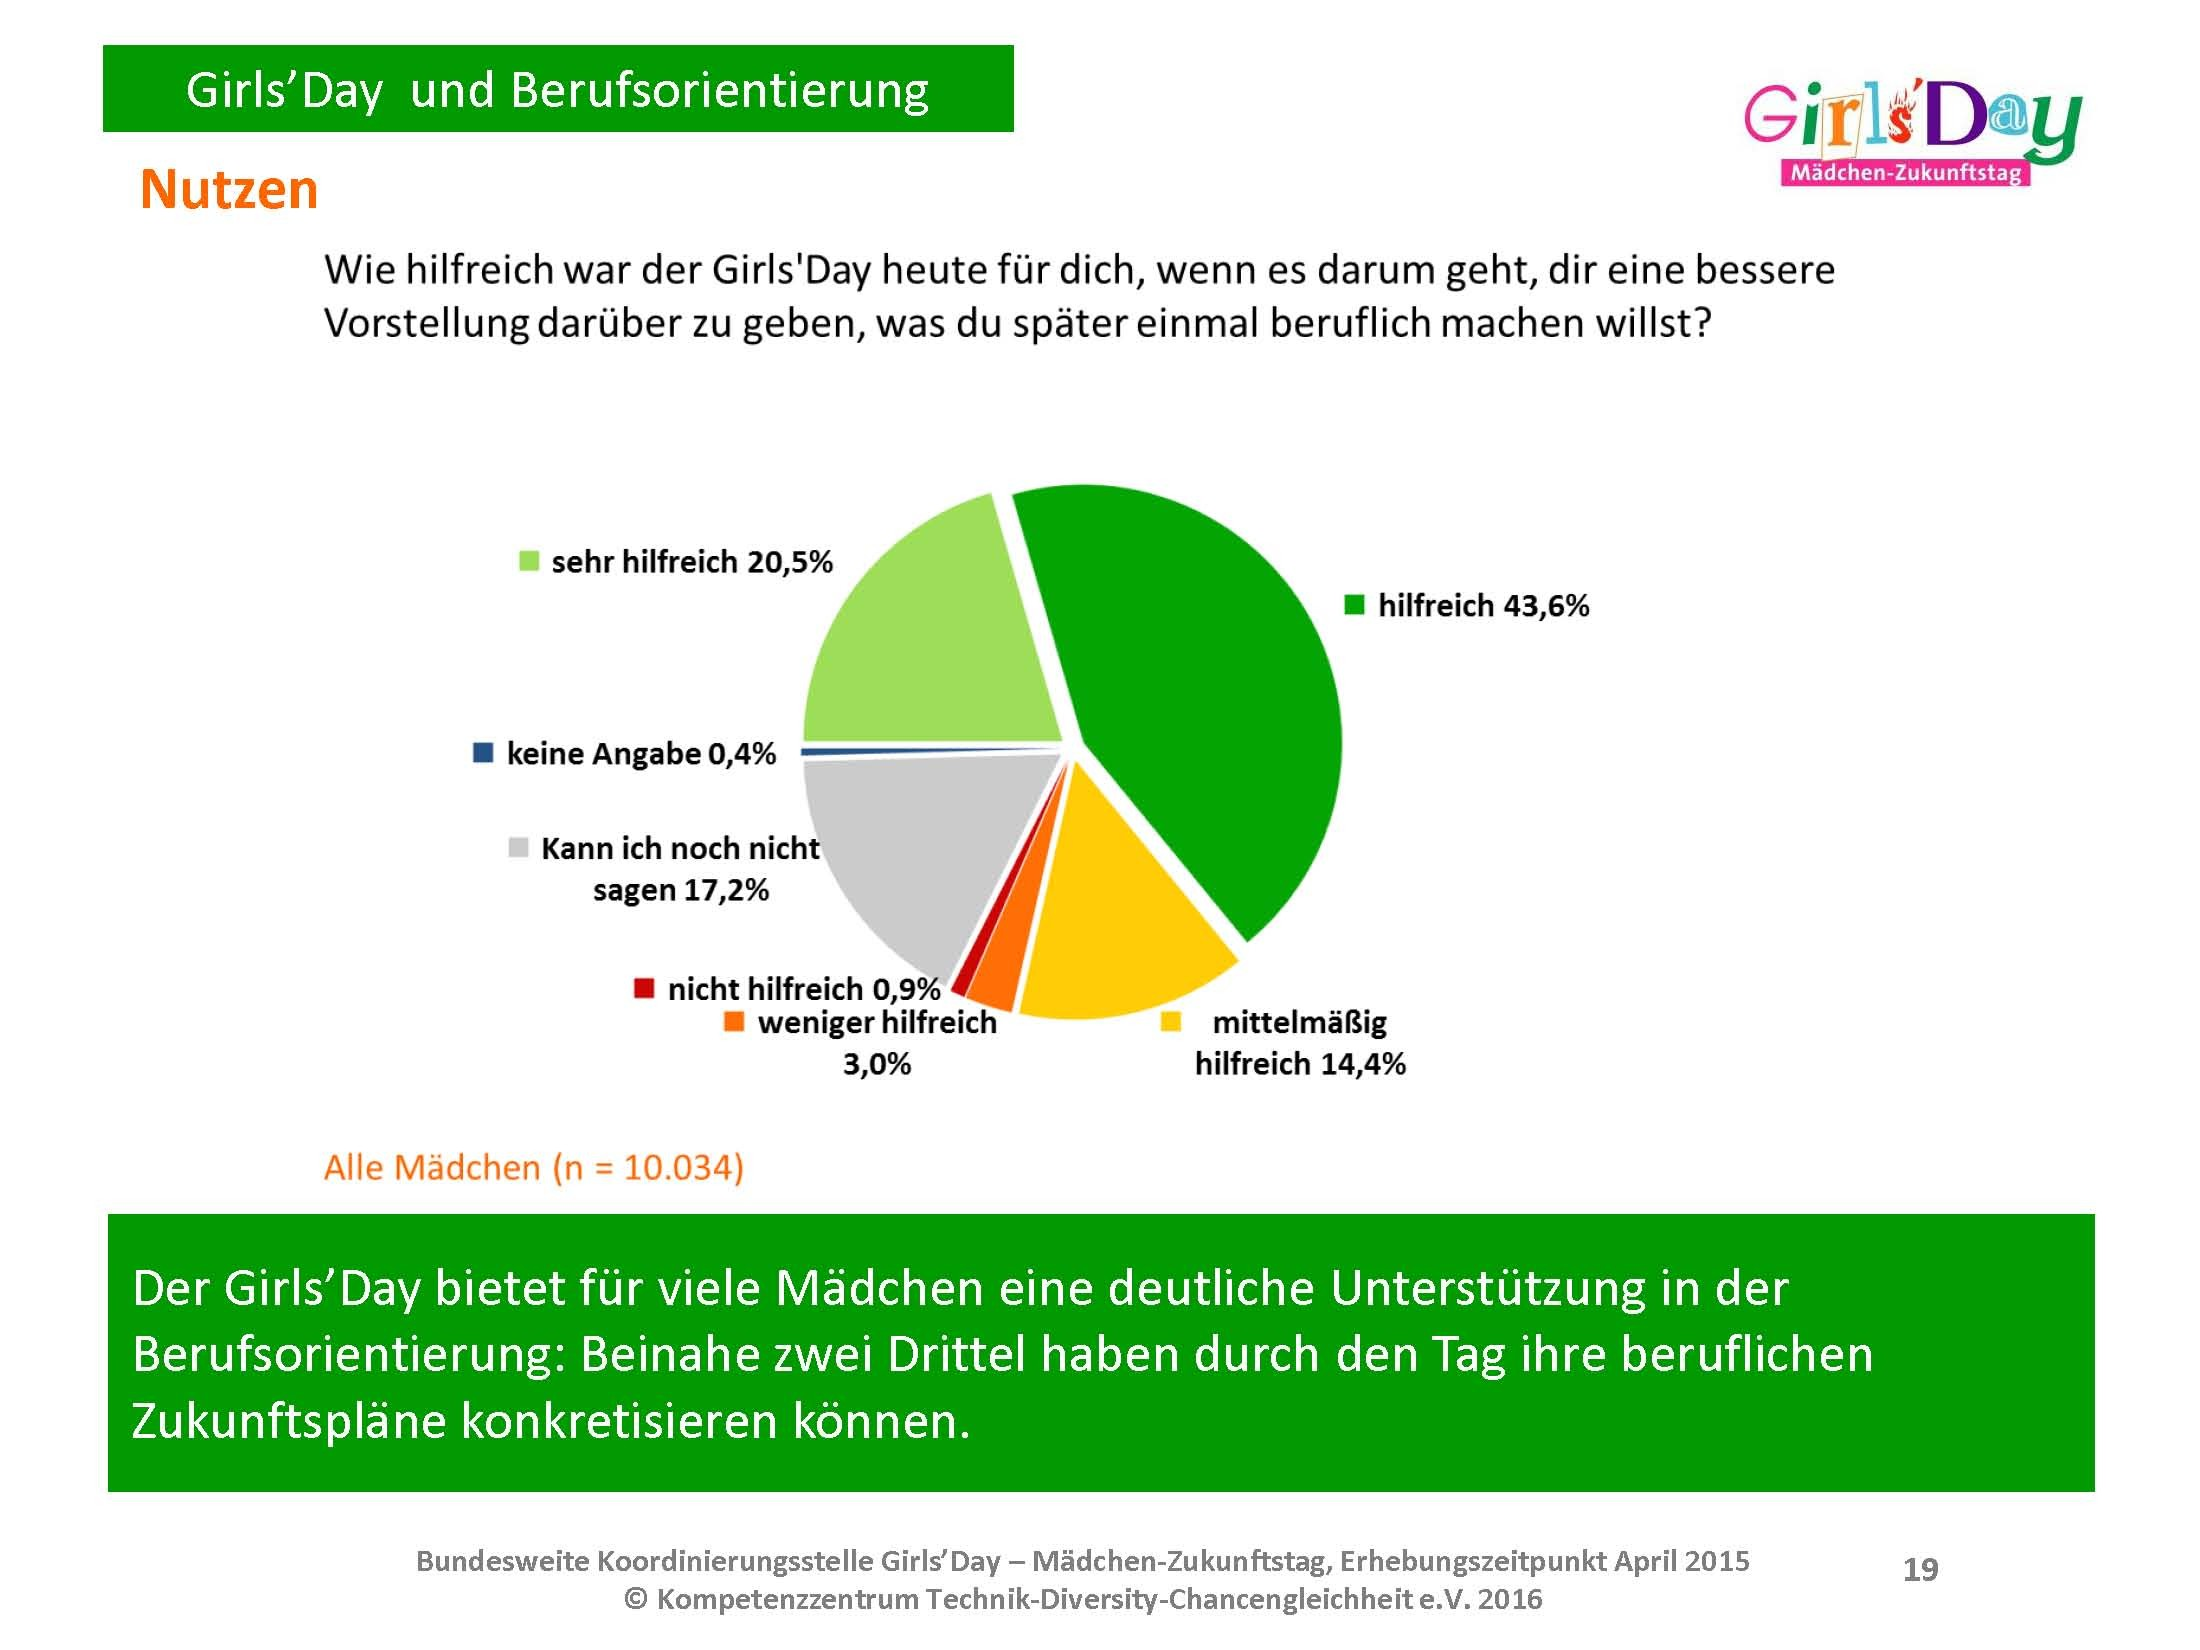 Girls'Day-Evaluationsergebnisse 2015 | Zusammenfassung